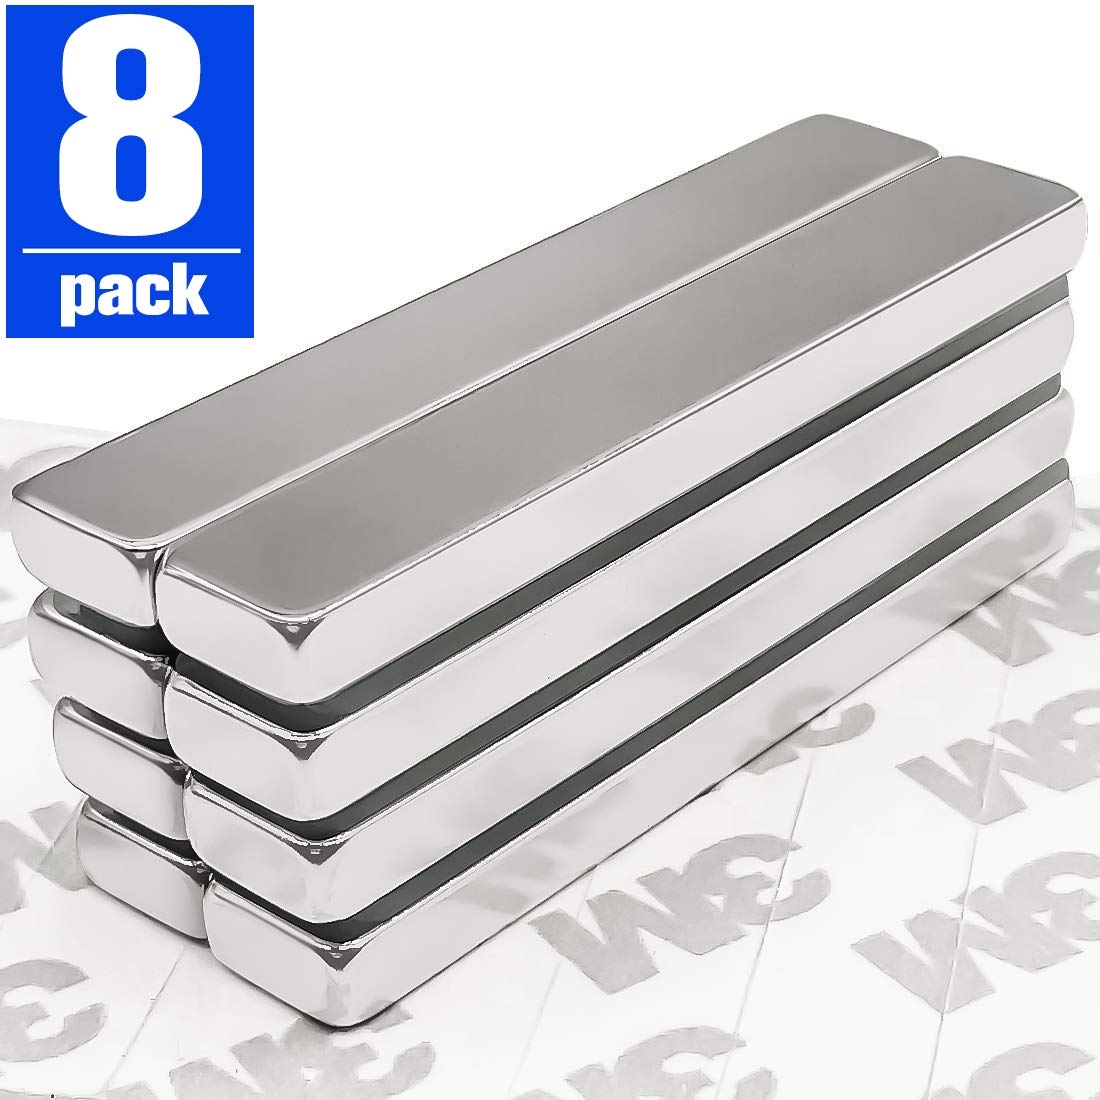 Upgraded Rare Earth Metal Neodymium Magnet 8 Pack Strong Neodymium Bar Magnets with Double-Sided Adhesive 60 x 10 x 5 mm